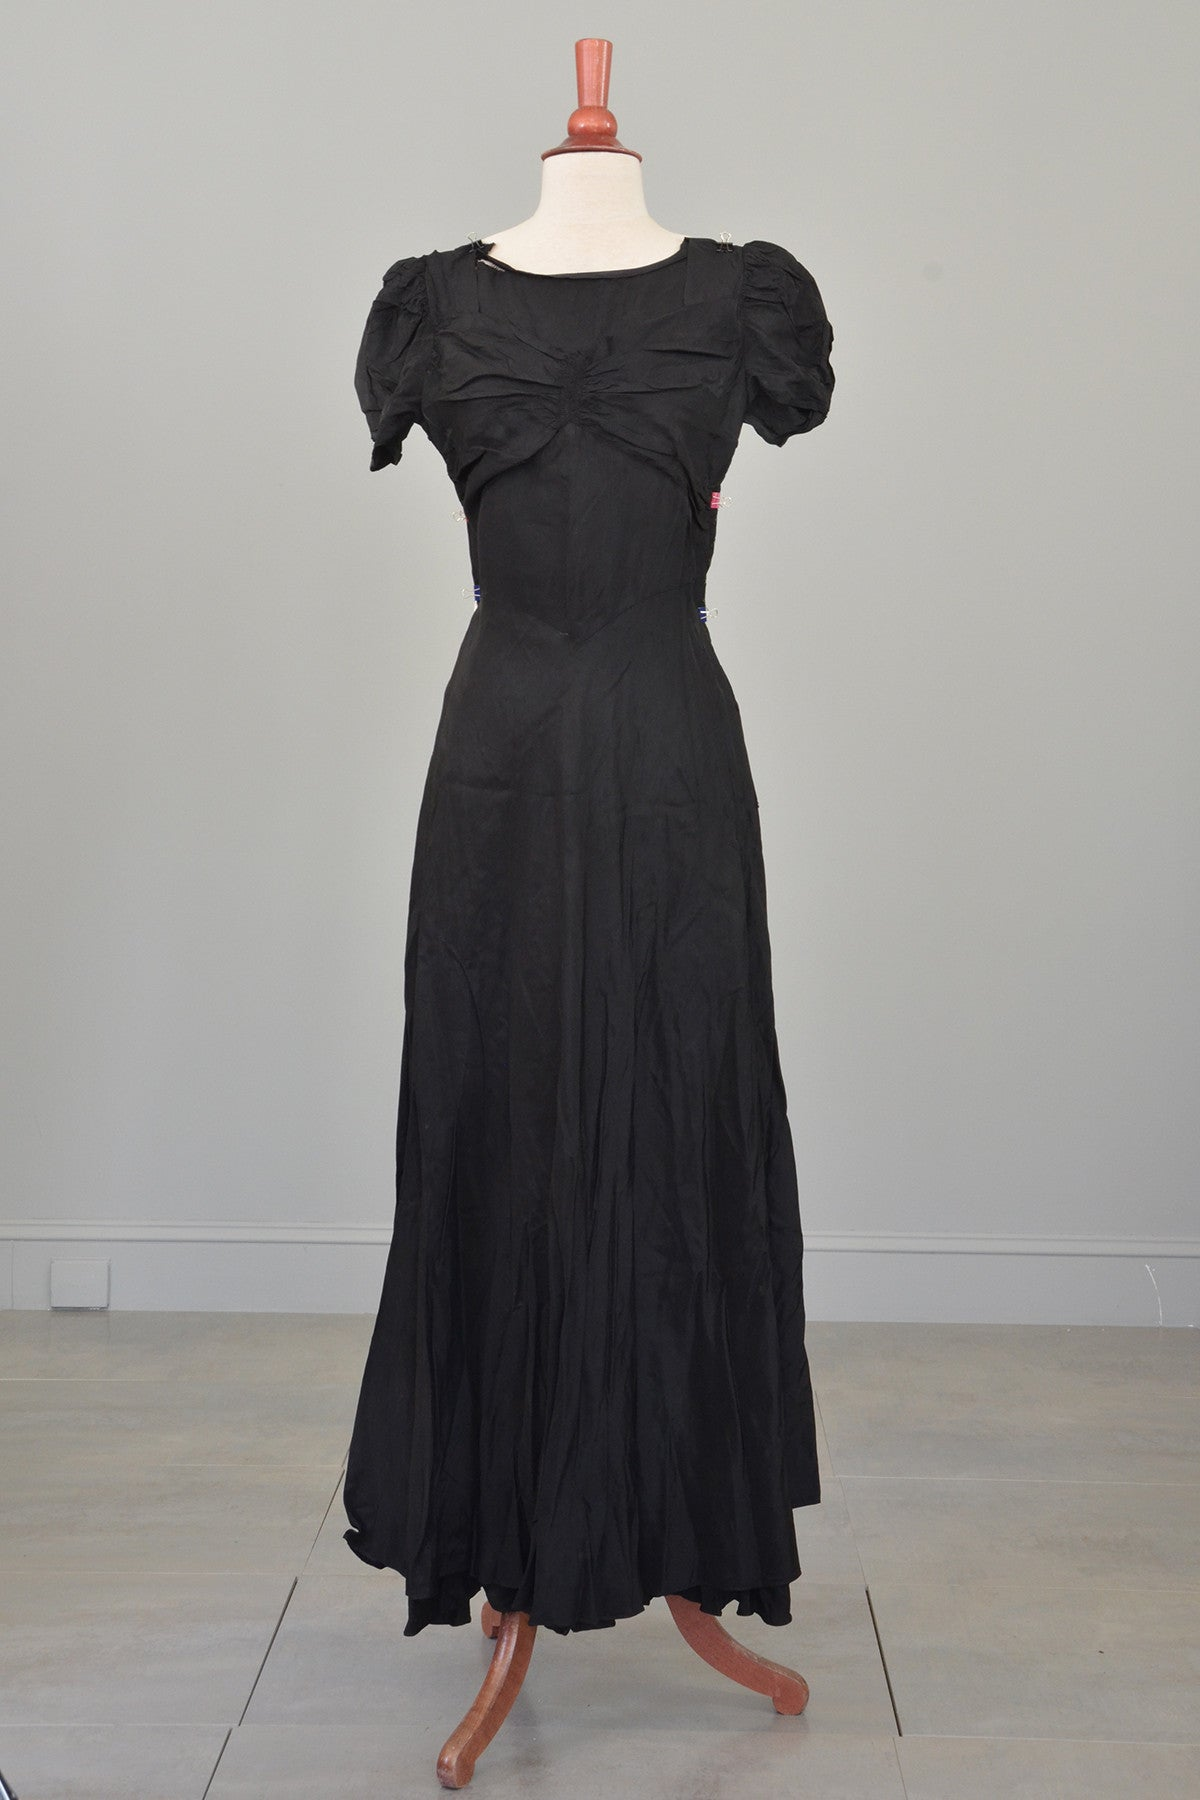 1930s 40s Black Cascading Ruffles Gown / Underslip for Study or Restoration